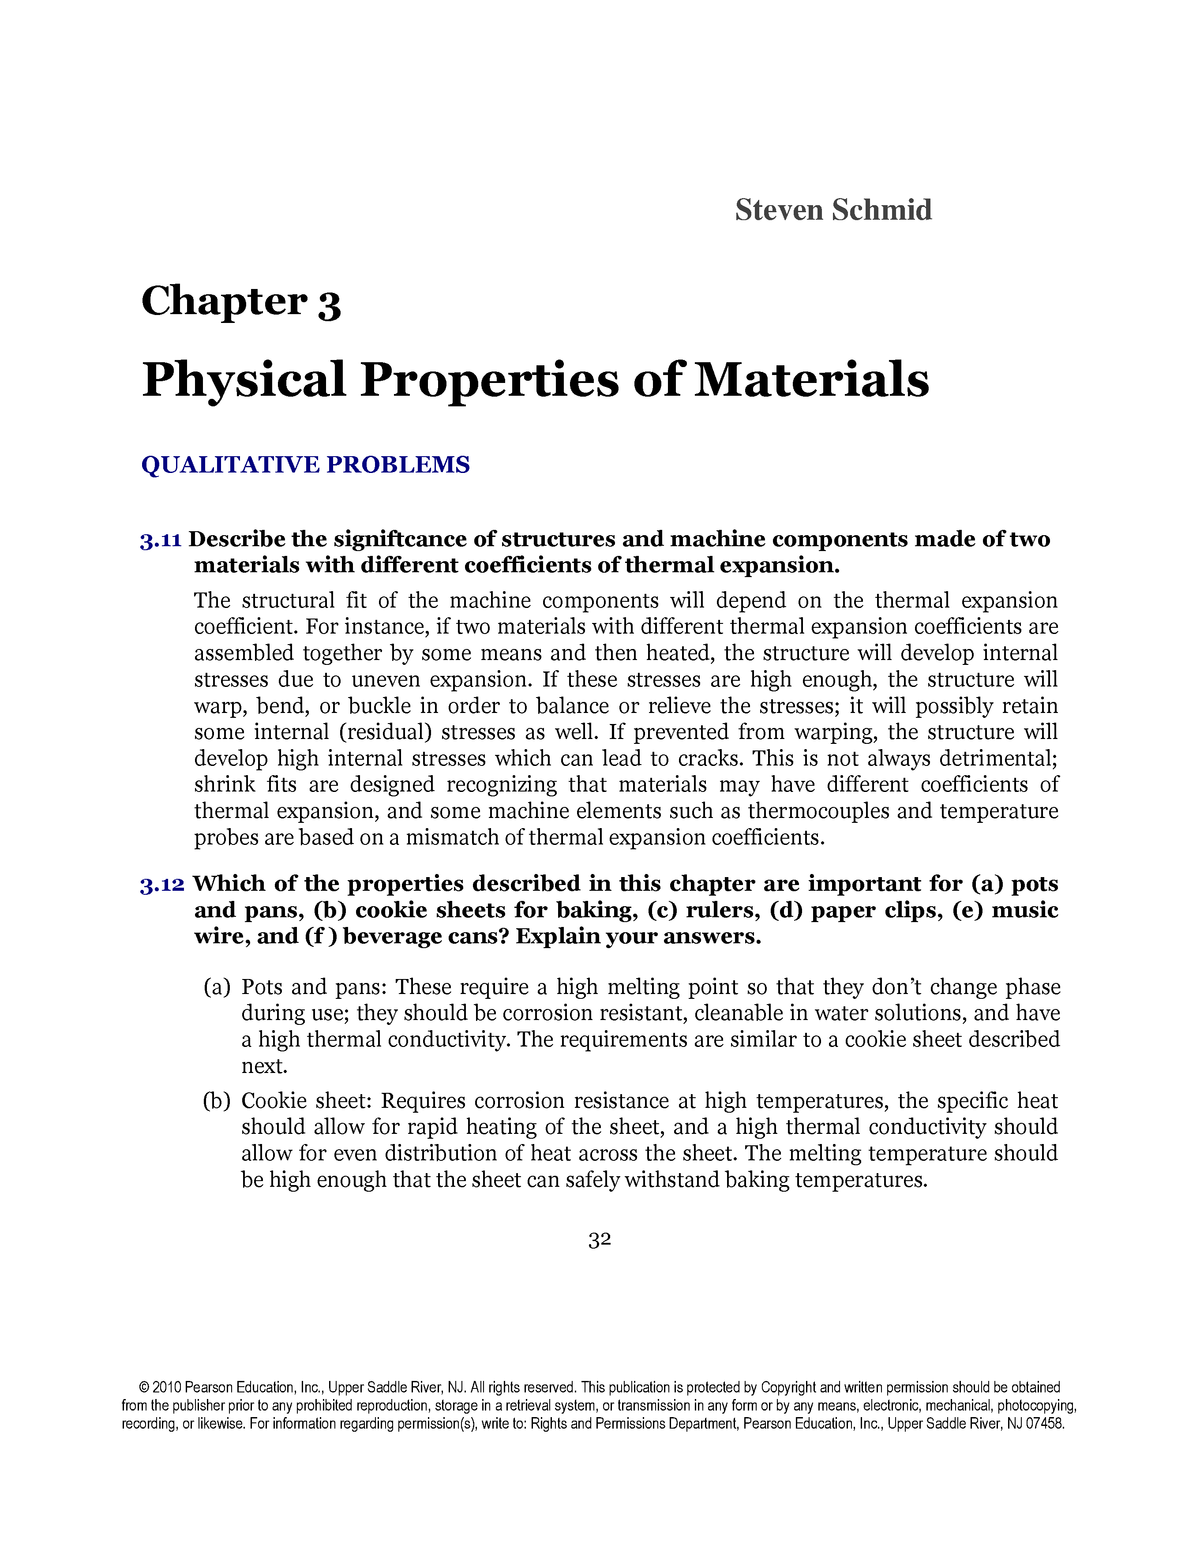 Solutions Manual for Manufacturing Engineering Technology